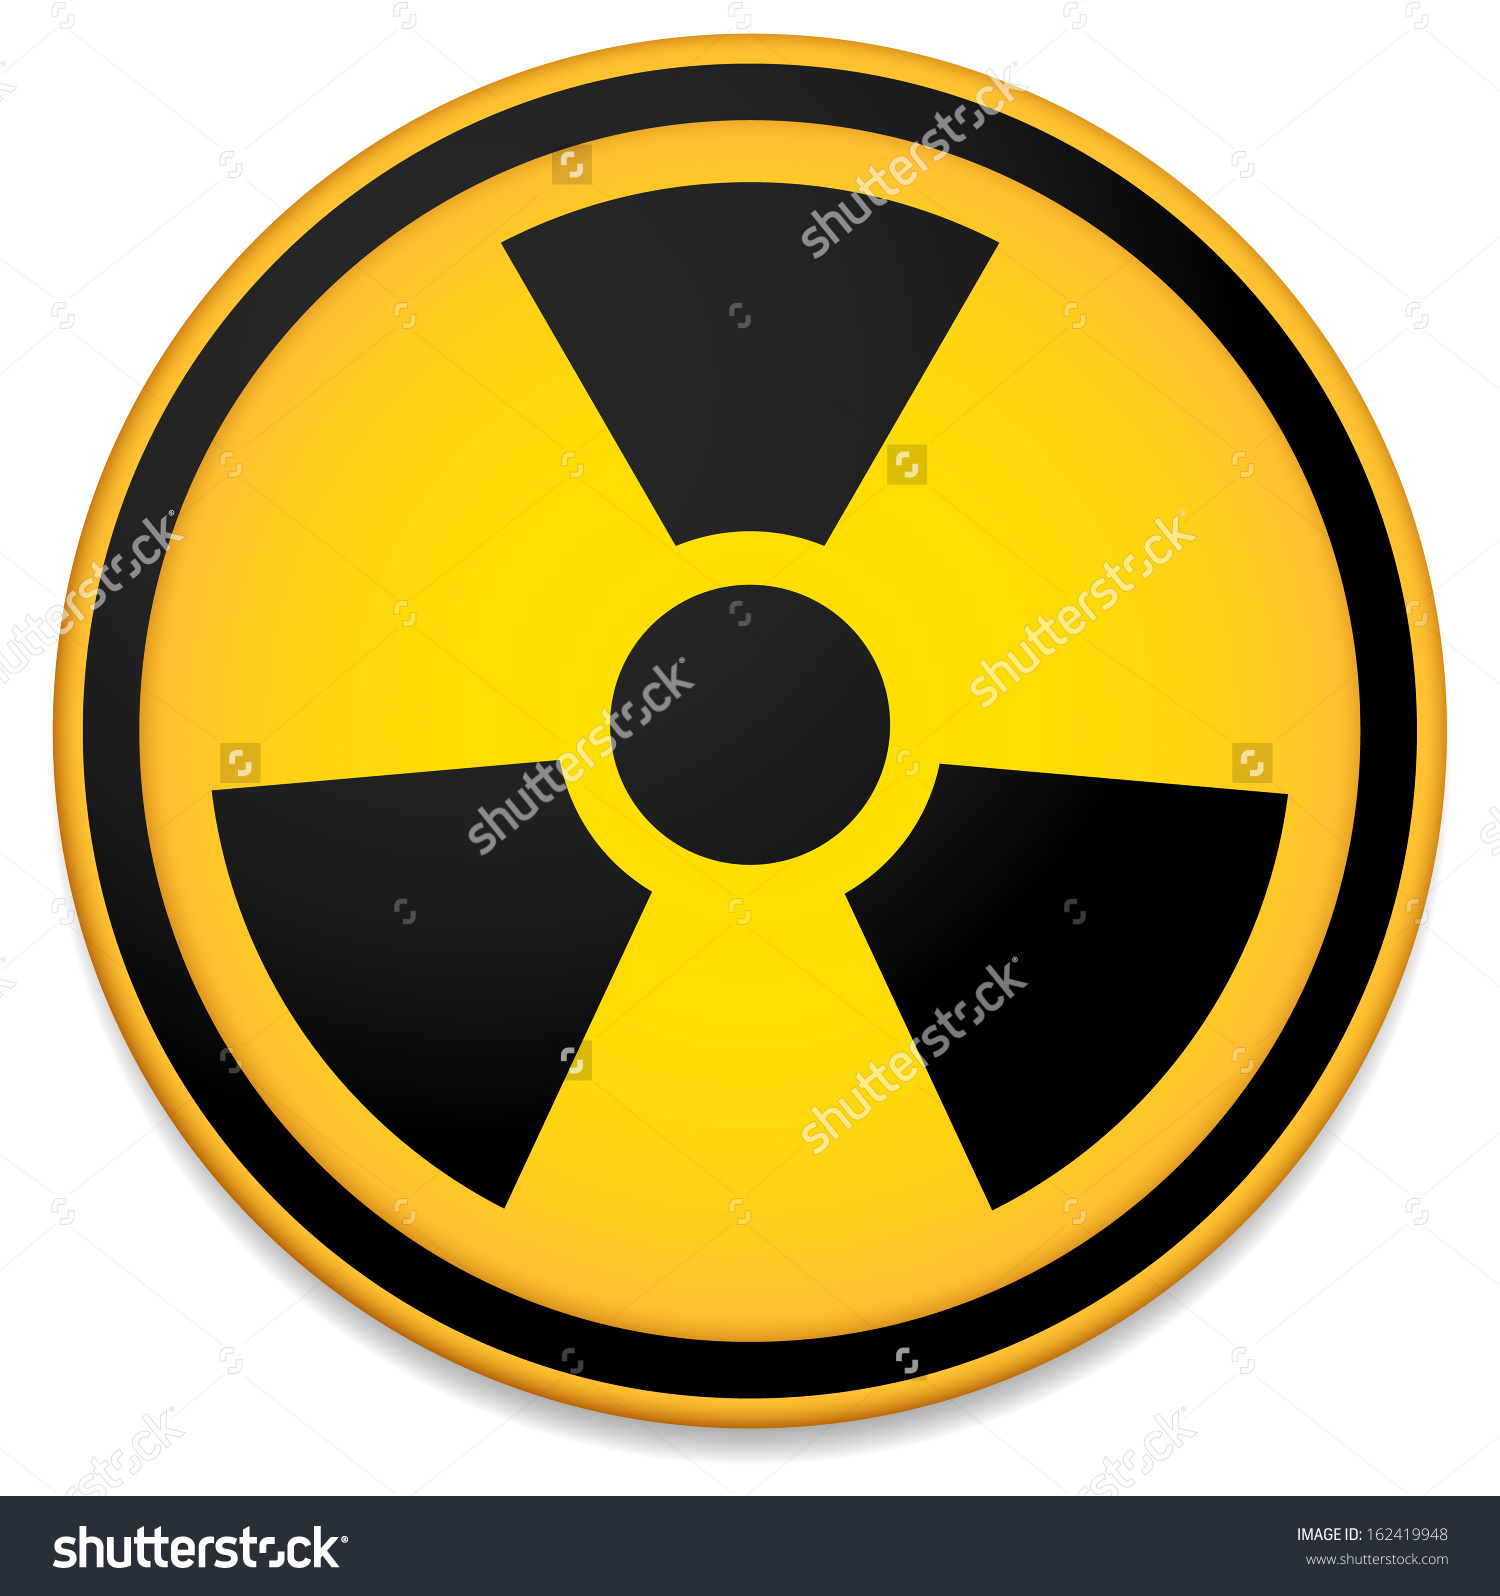 Radioactive clipart #12, Download drawings